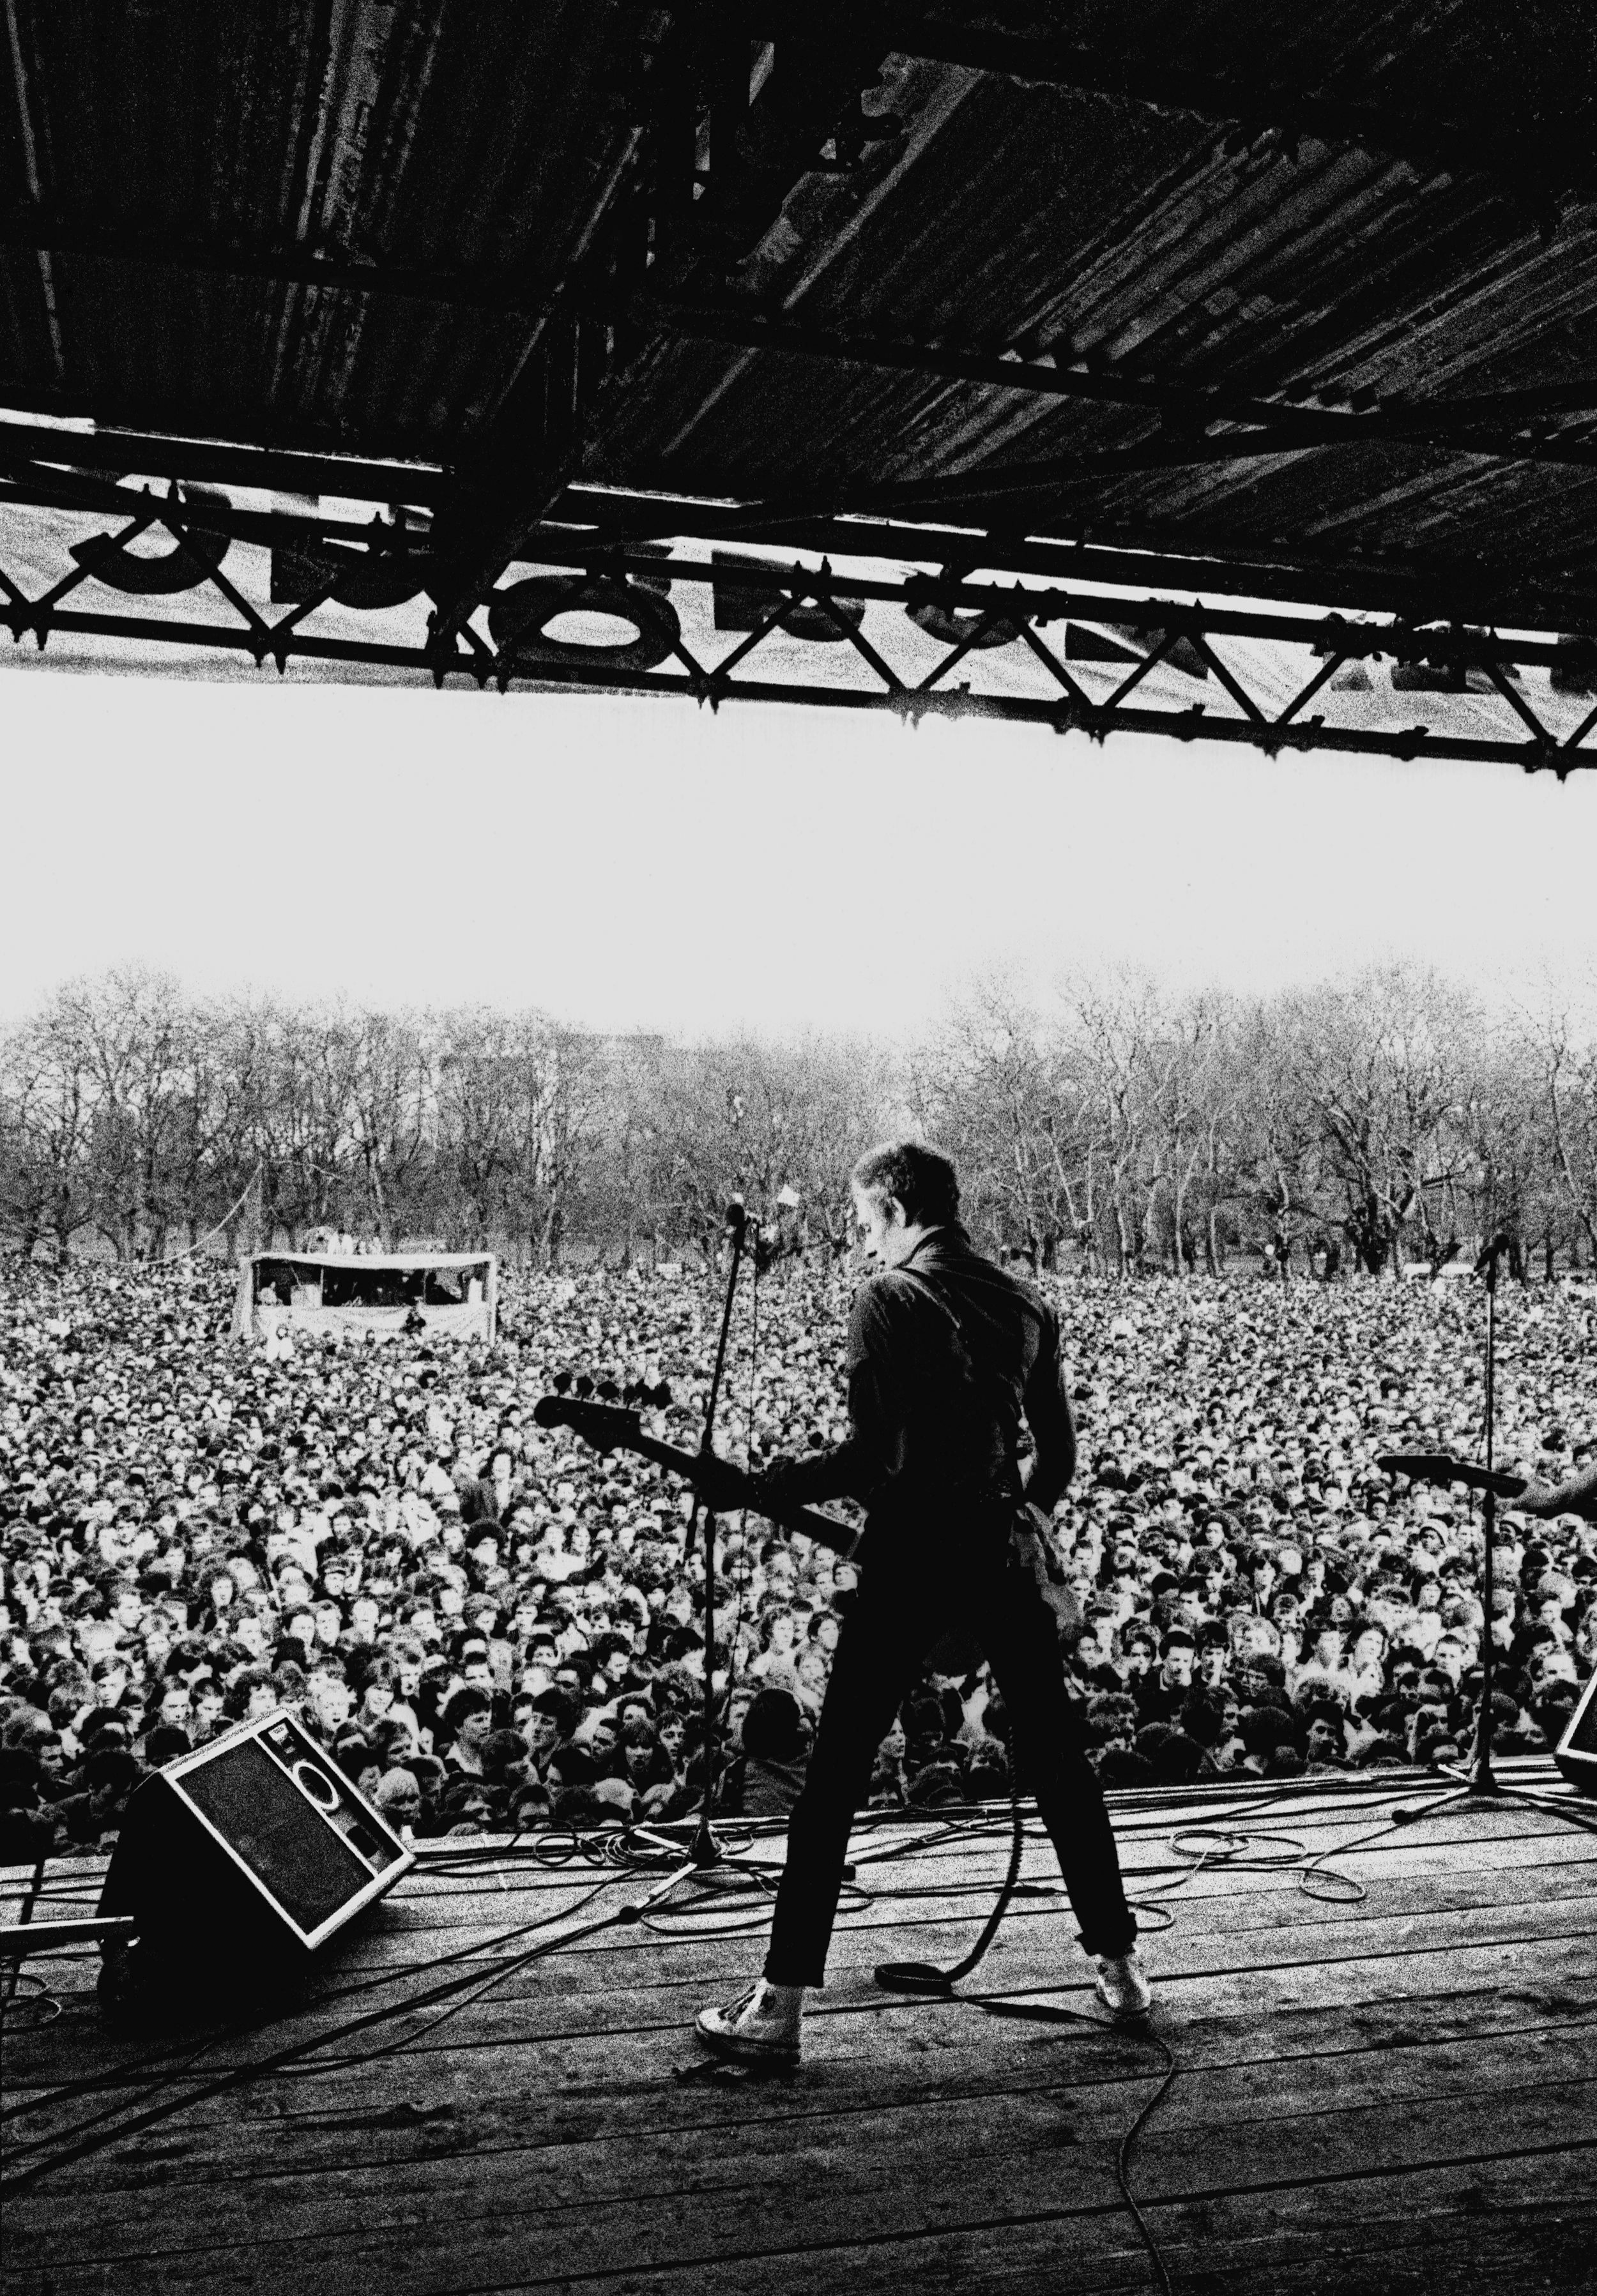 The Clash's Paul Simonon at the Carnival Against the Nazis in April, 1978 (photo by Syd Shelton)